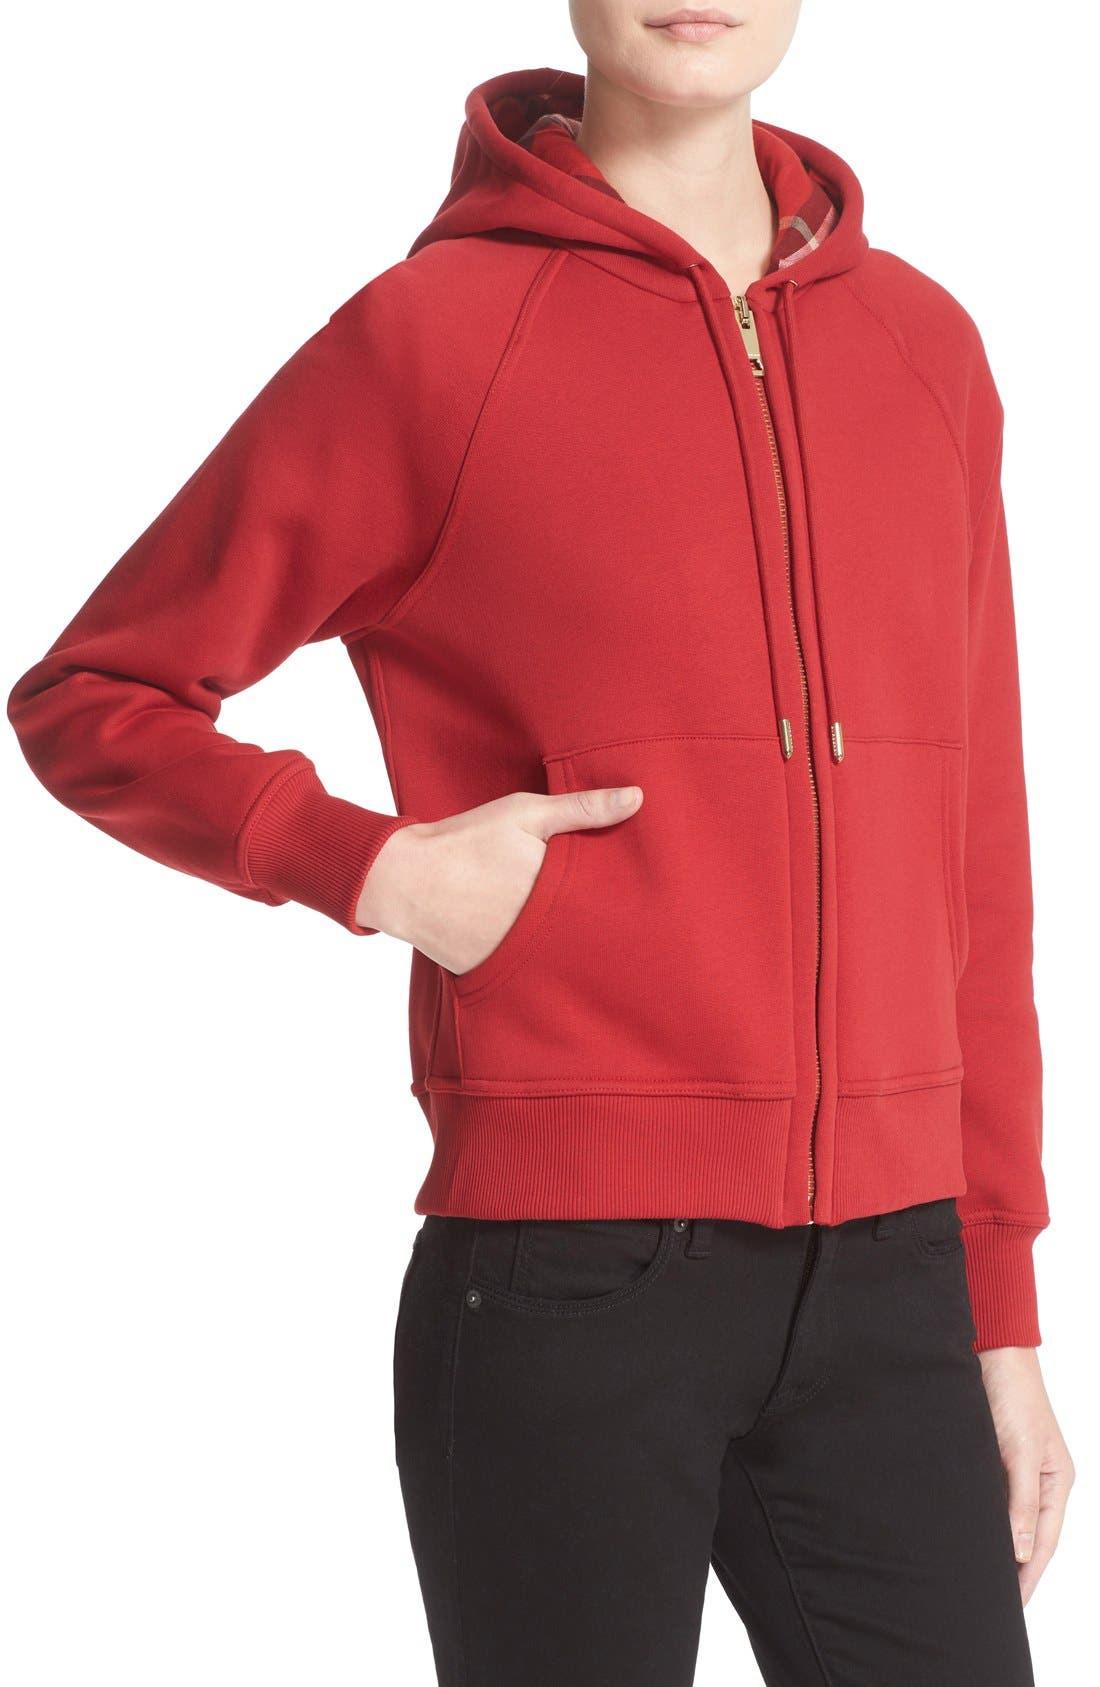 Check Print Hoodie,                             Alternate thumbnail 10, color,                             PARADE RED